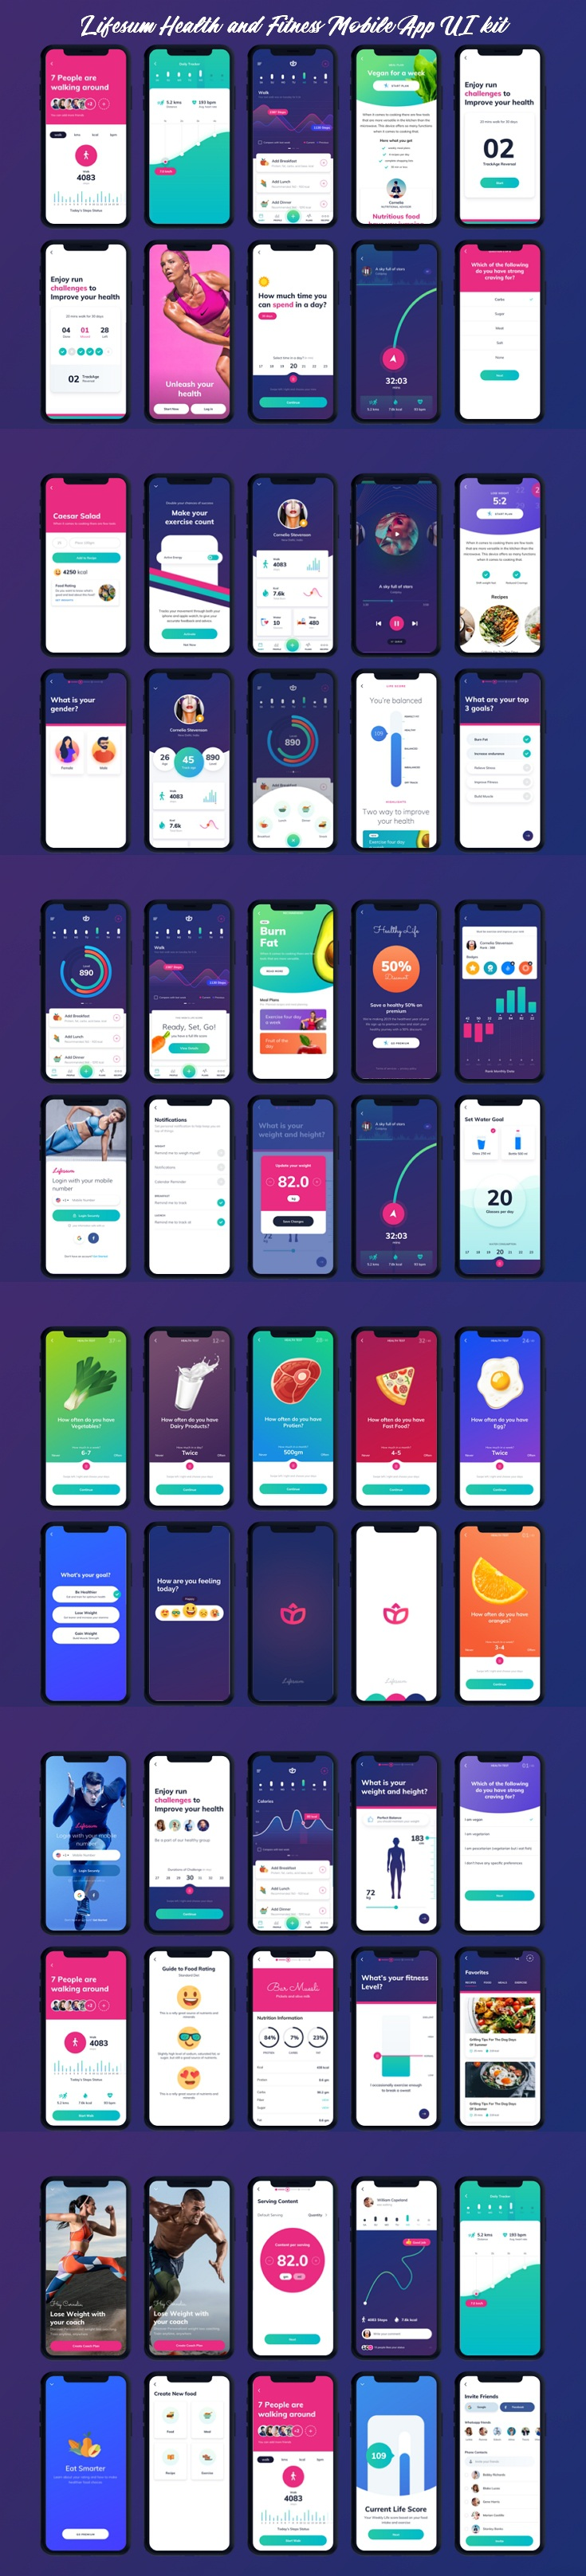 Health and Fitness Mobile App UI kit